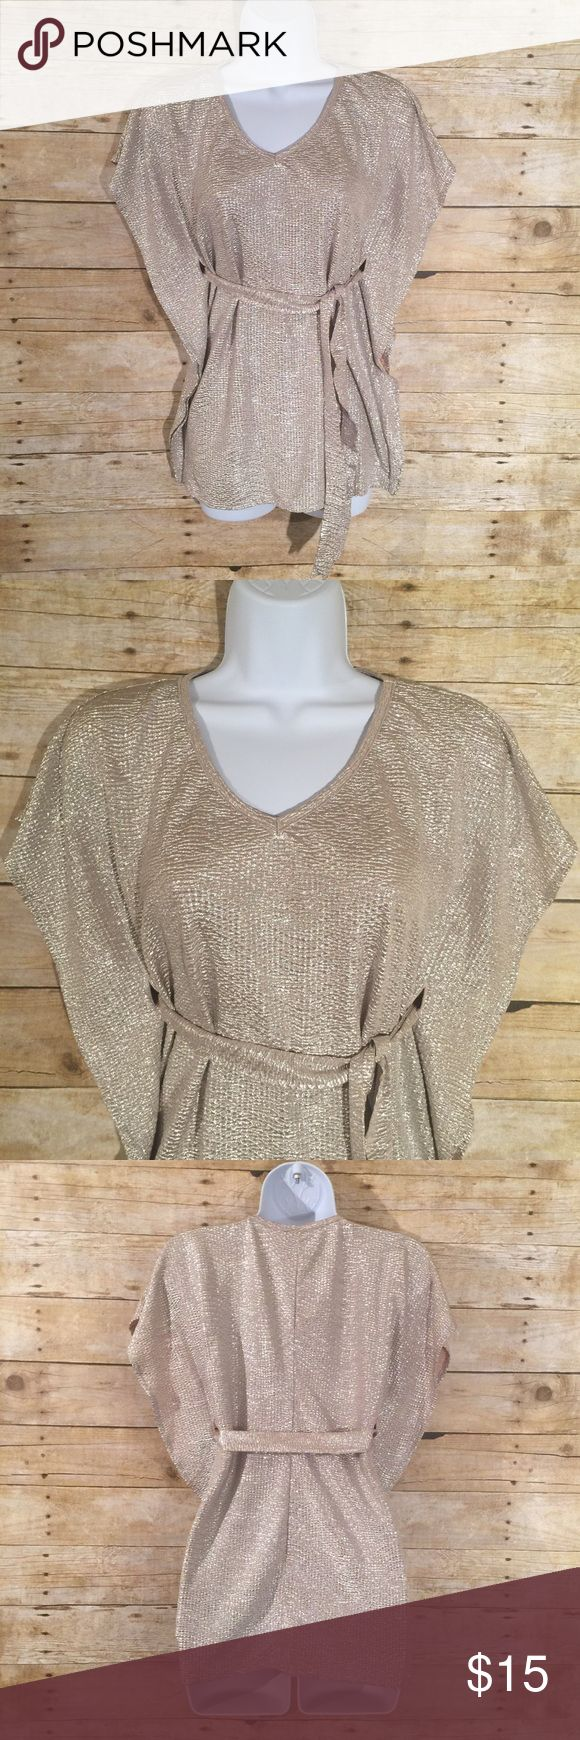 Gold Metallic Shimmer Dolman Batwing Blouse Blouse is in gently used condition. No stains or flaws. SIZE X-Small Loved by Heidi Klum Tops Blouses